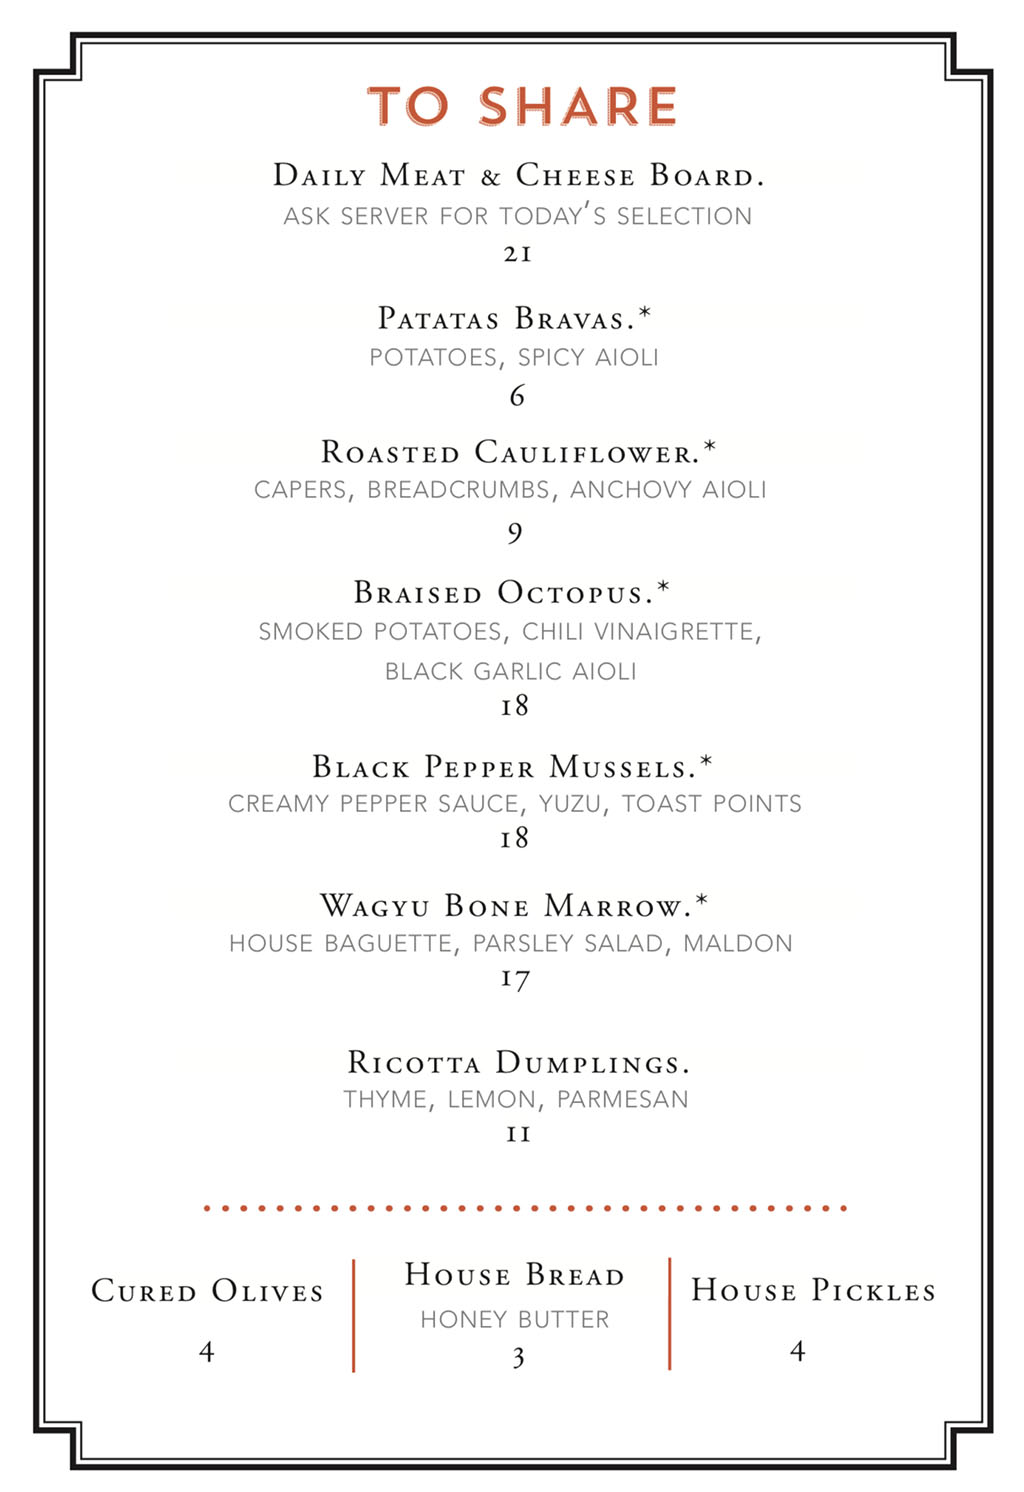 The Copper Onion menu - to share